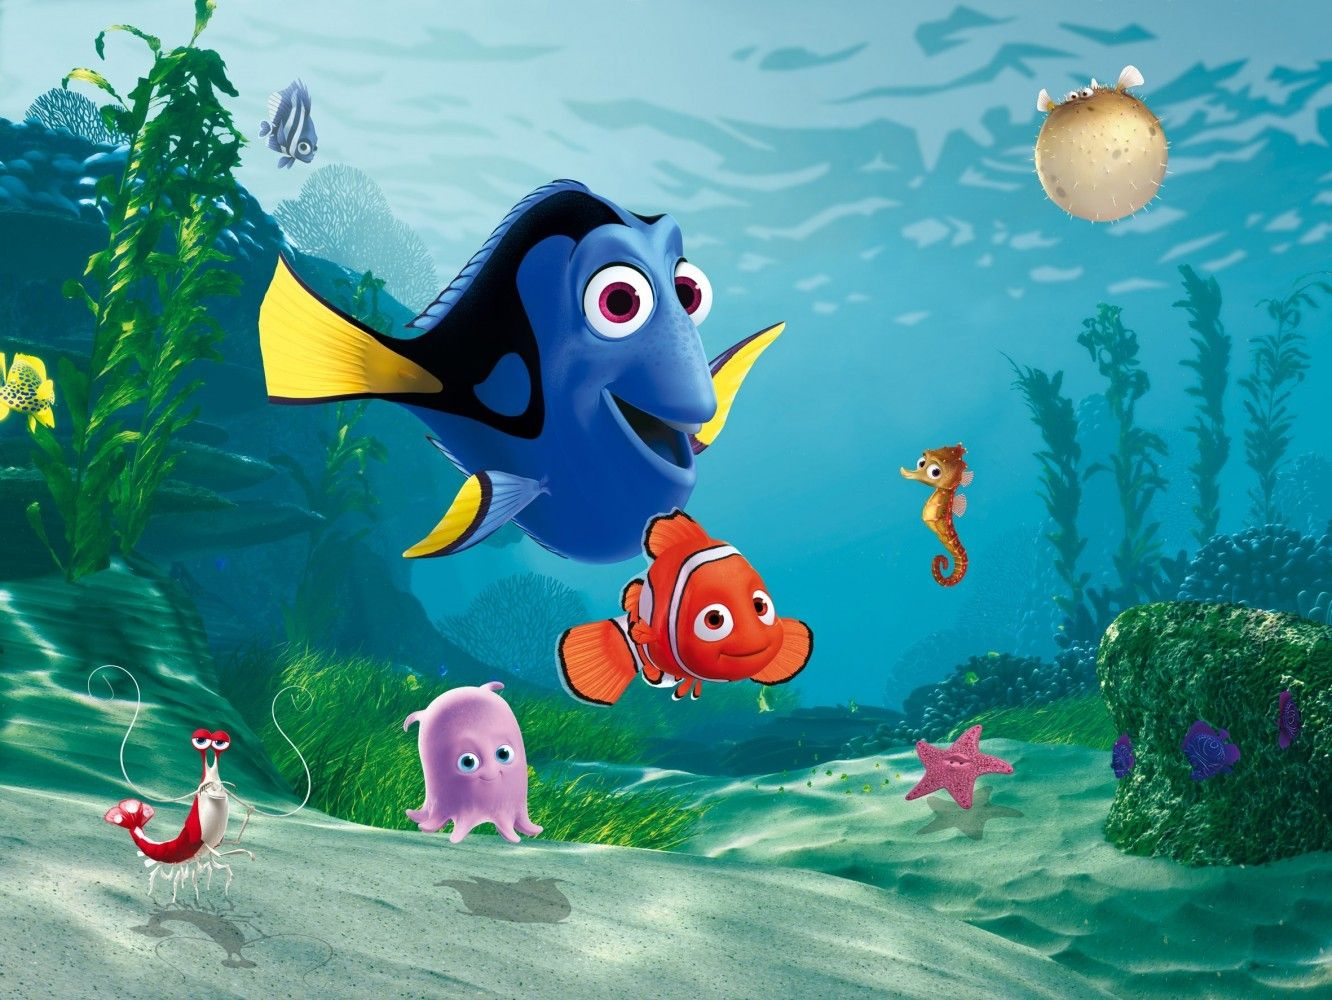 Finding Dory Wallpapers High Resolution And Quality Download 640 1138 Finding Dory Wallpapers 36 Wallpapers Disney Finding Nemo Finding Nemo Disney Wallpaper